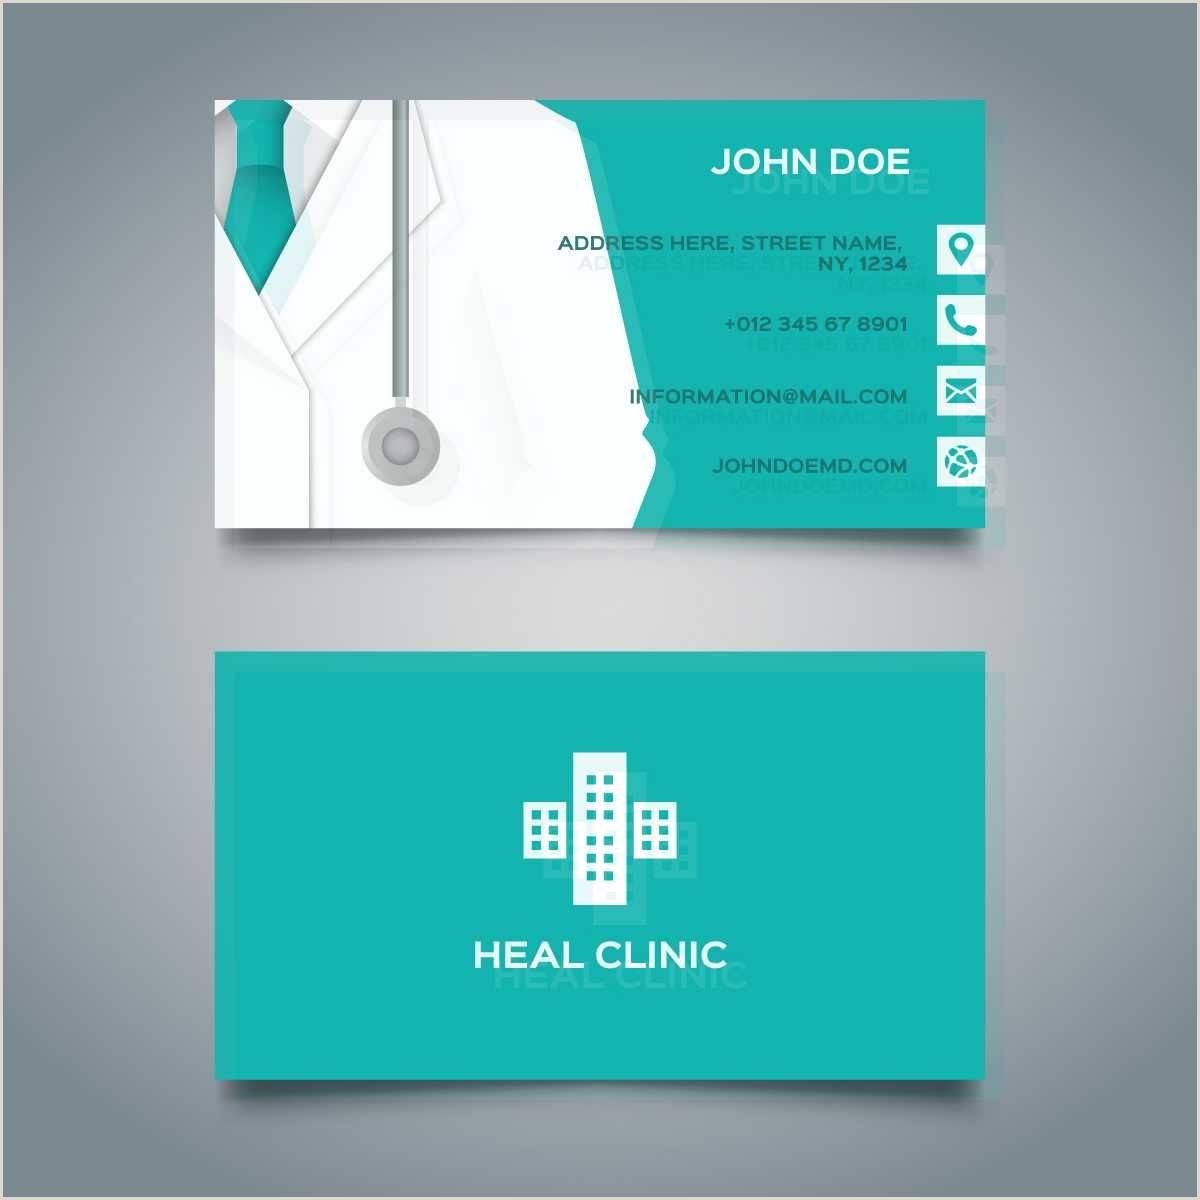 How To Make Unique Business Cards Blue Medical Card Free